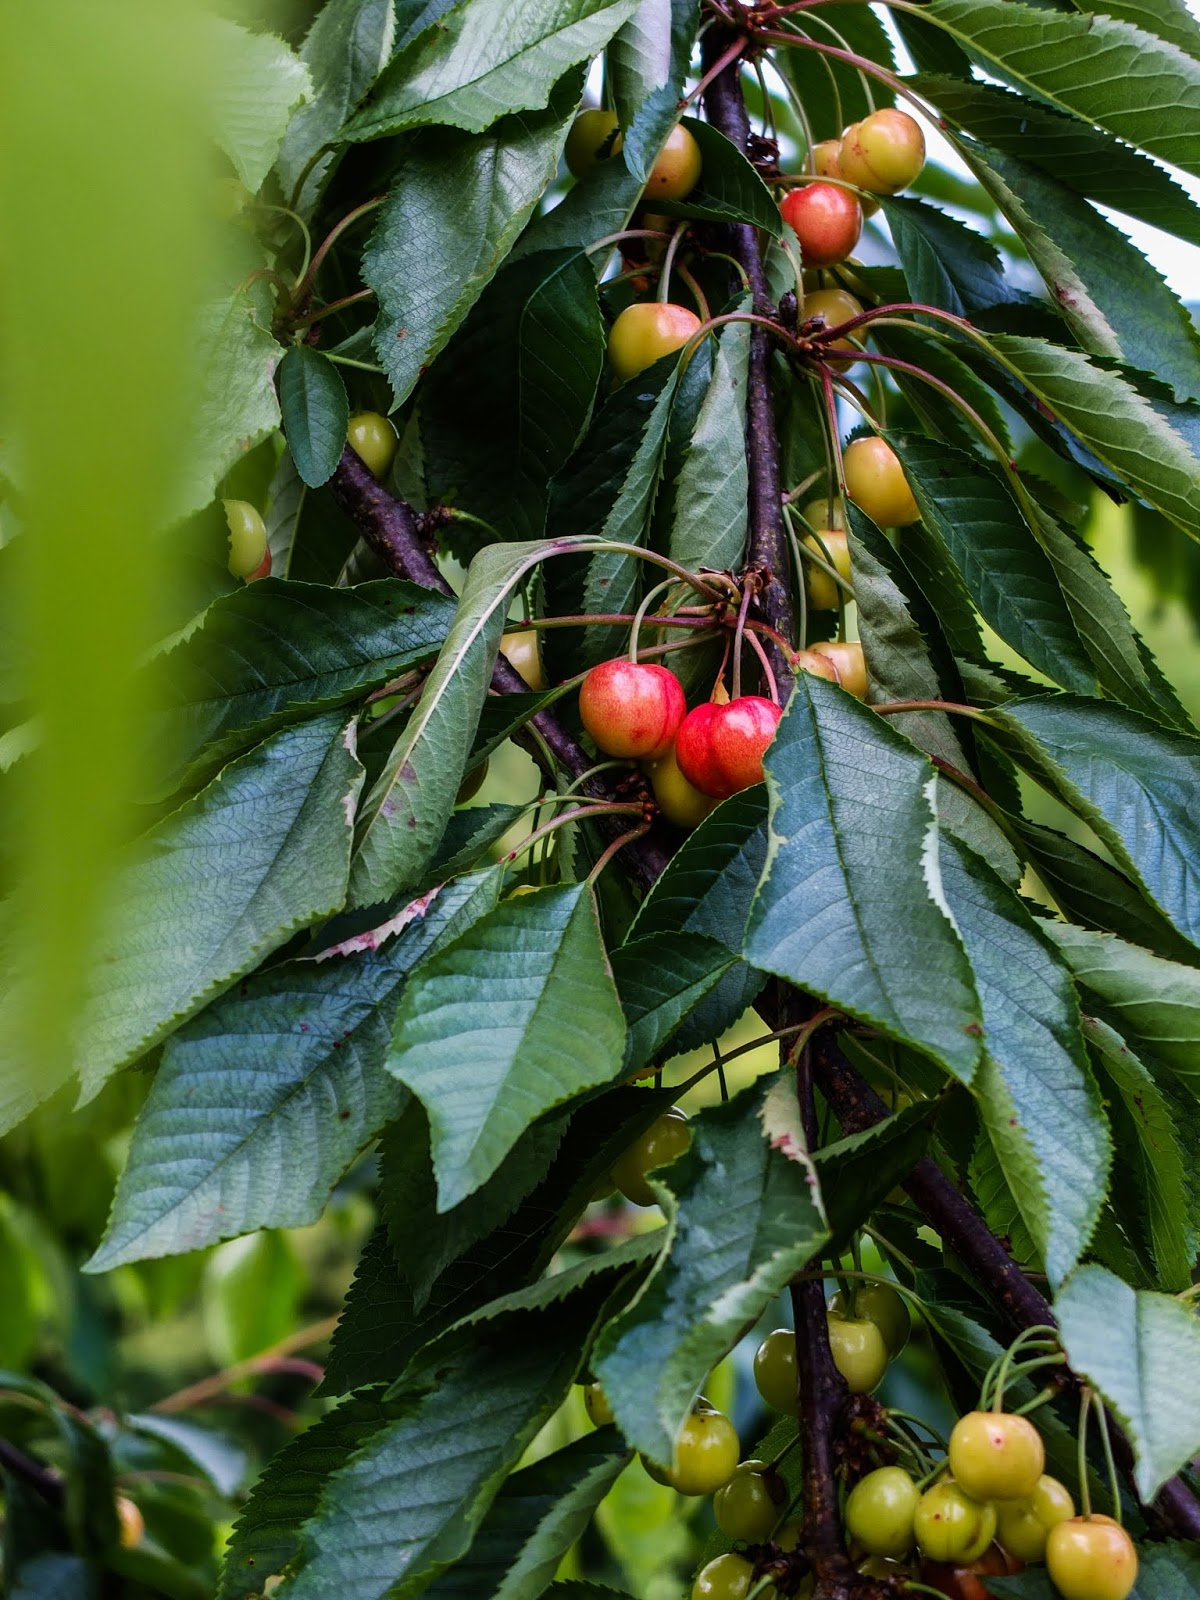 Cherries ripening on a tree branch.